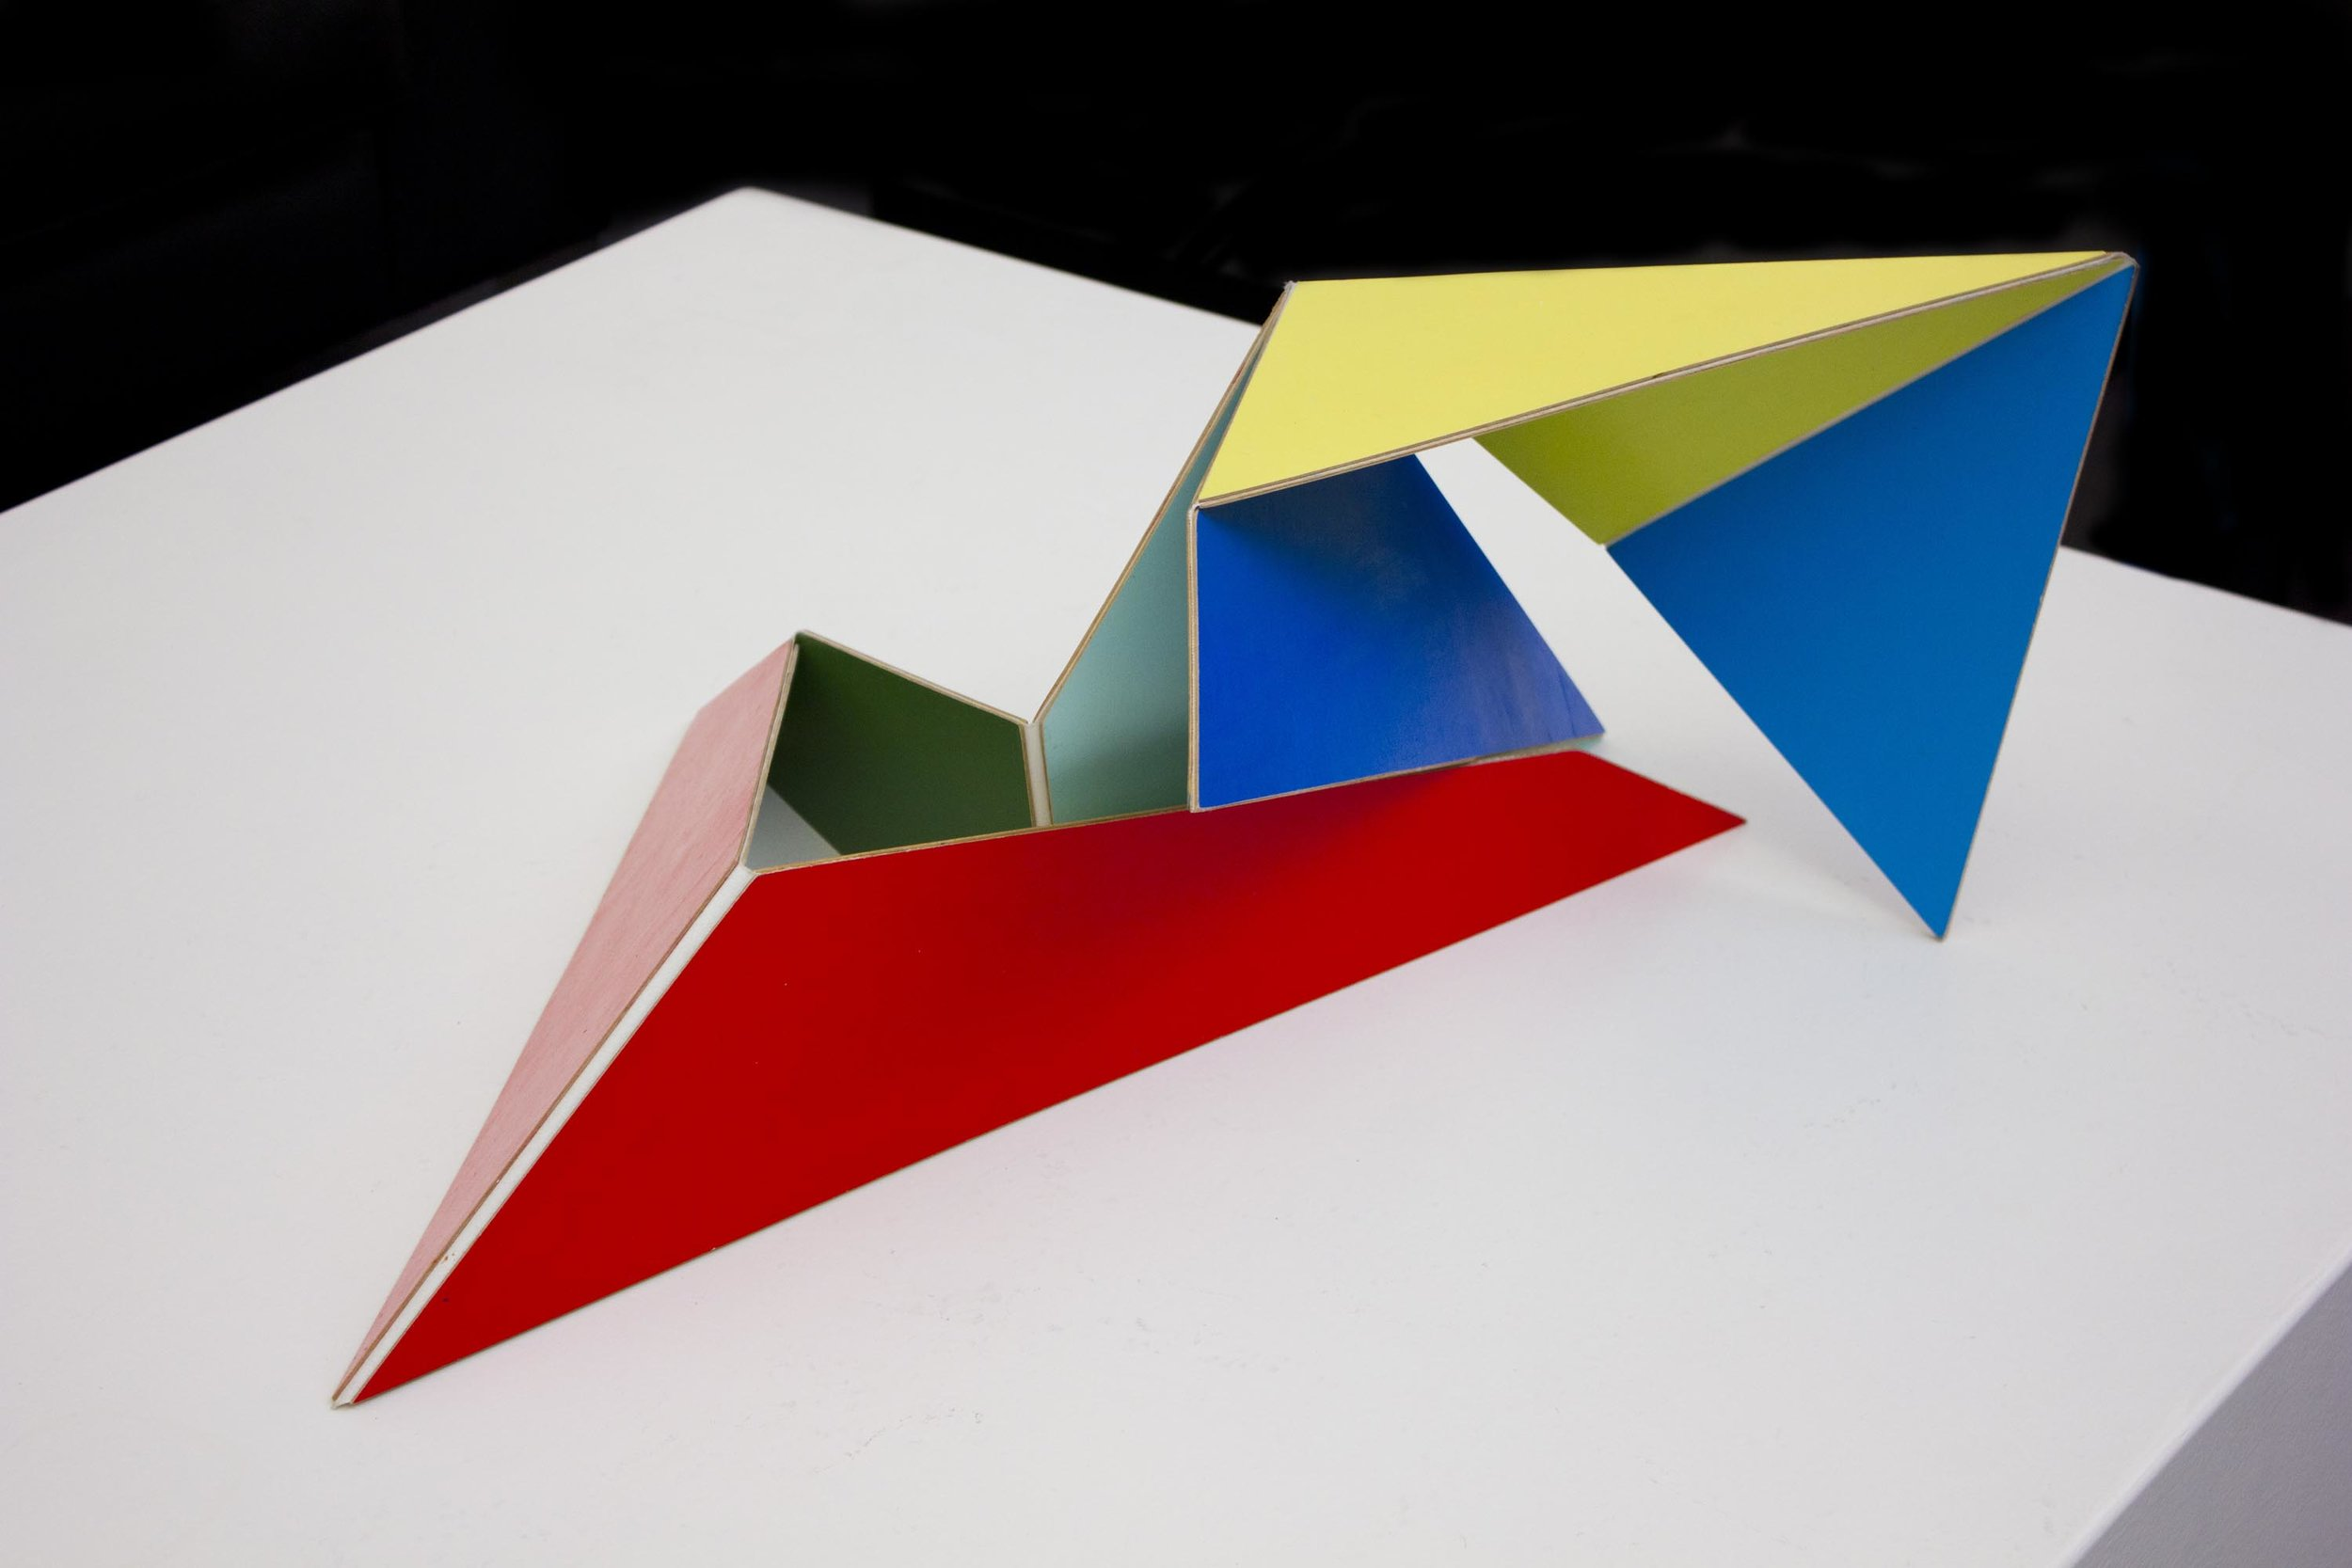 GEMMA SMITH   Multi Coloured Adaptable  2008 acrylic on plywood, polyester installed dimensions variable NFS